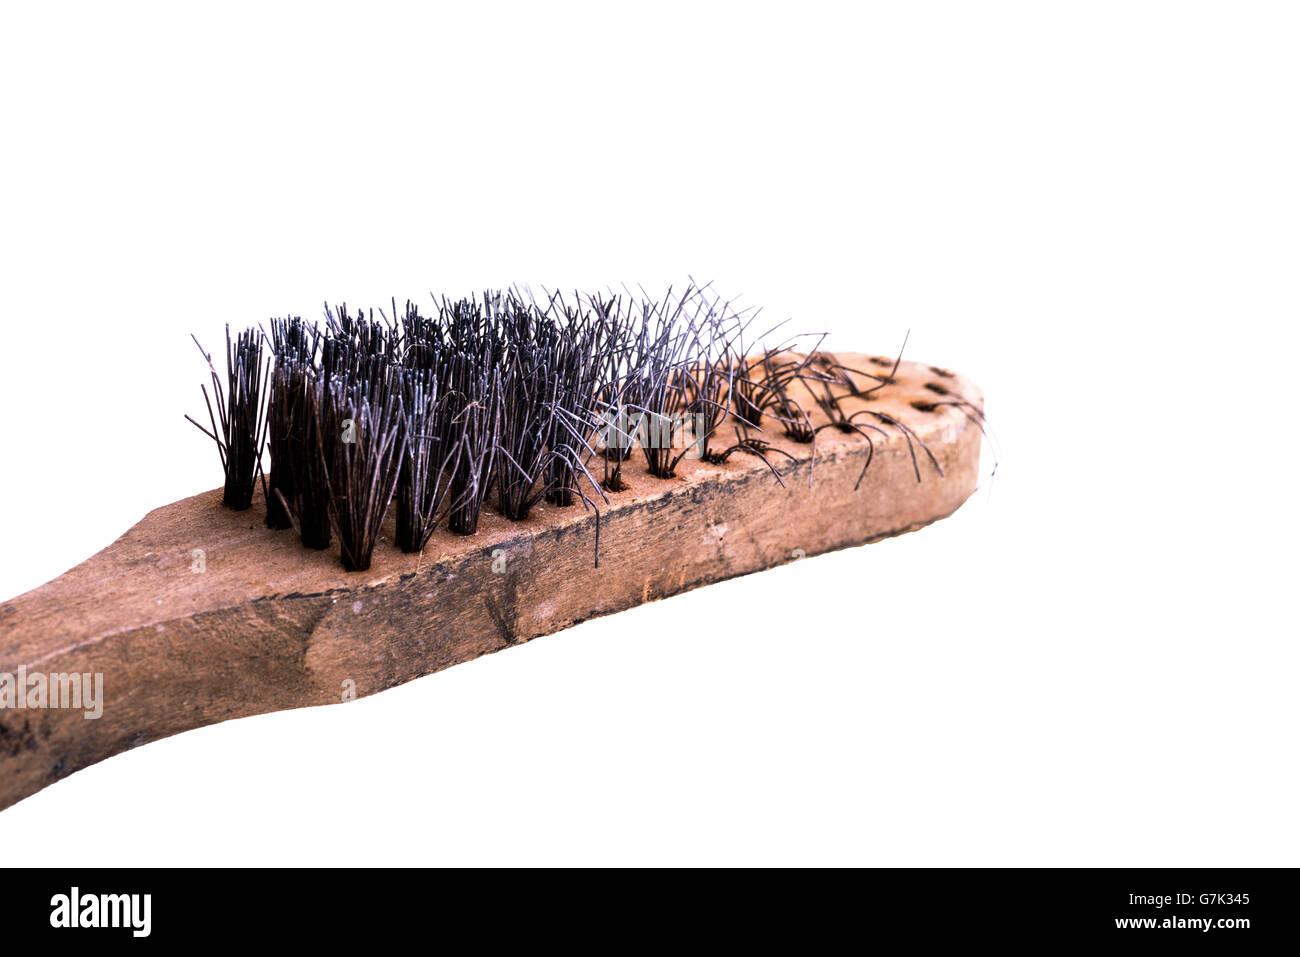 Old badly worn wire brush. - Stock Image